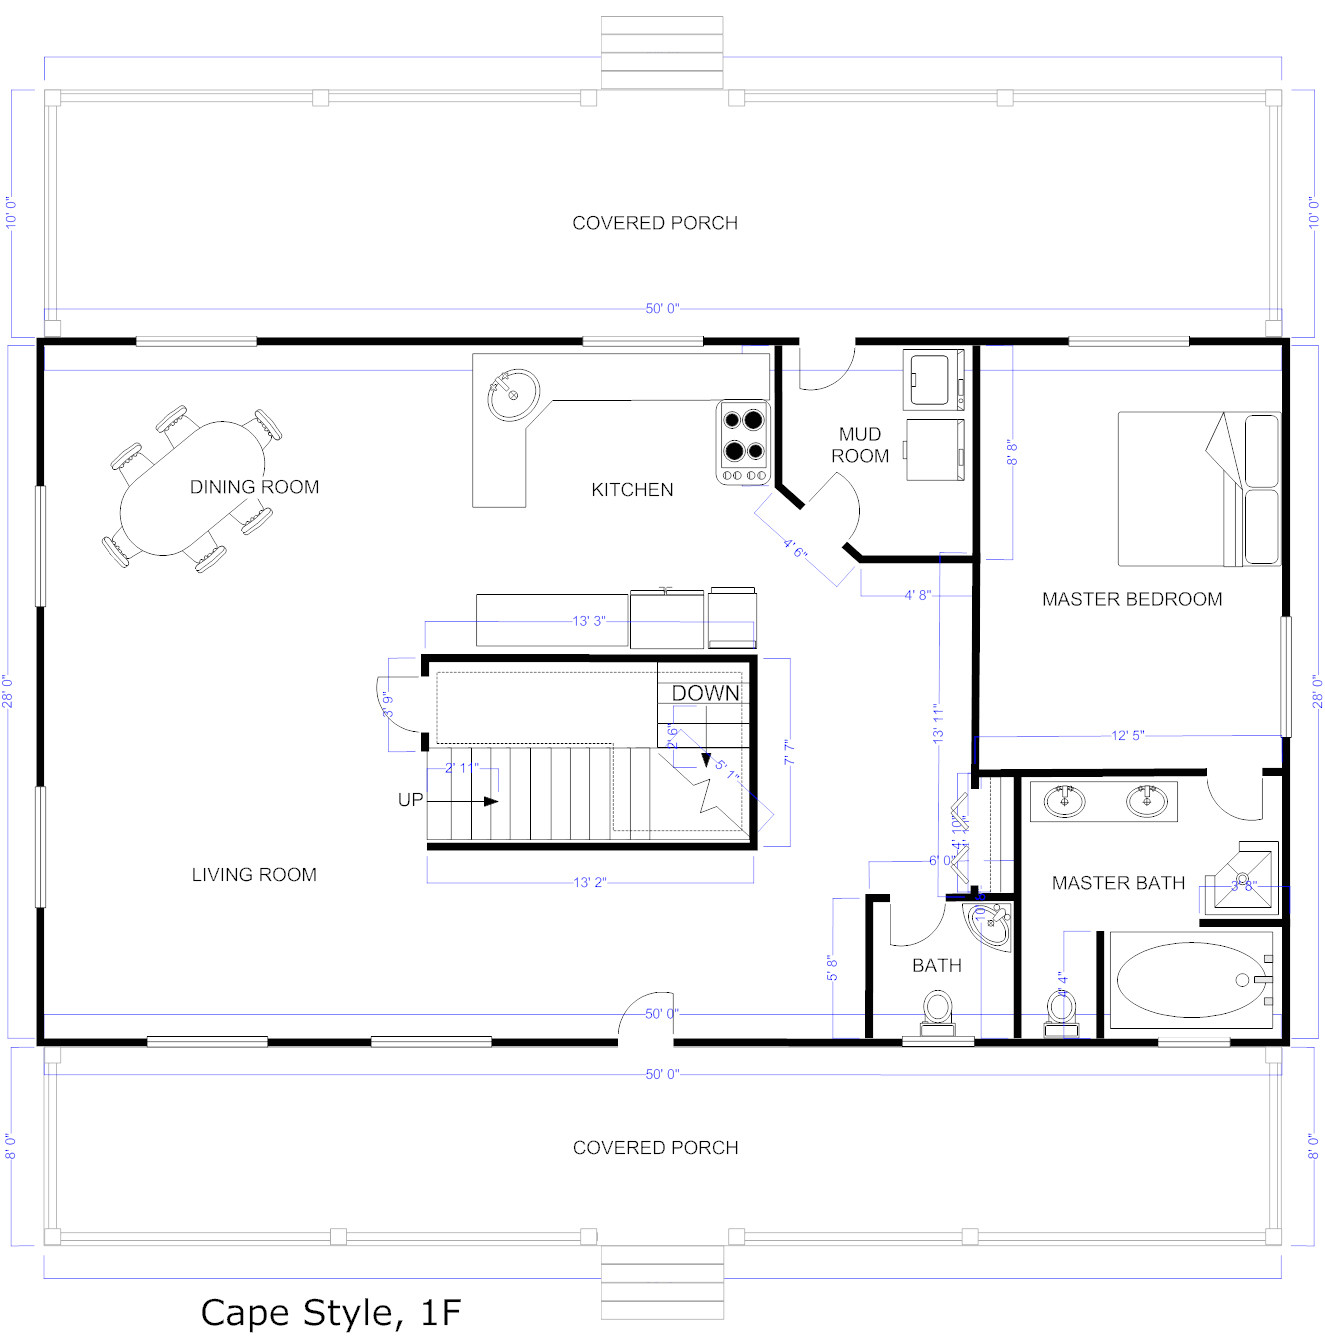 visio stencils home floor plan awesome visio puter room floor plan template visio office layout